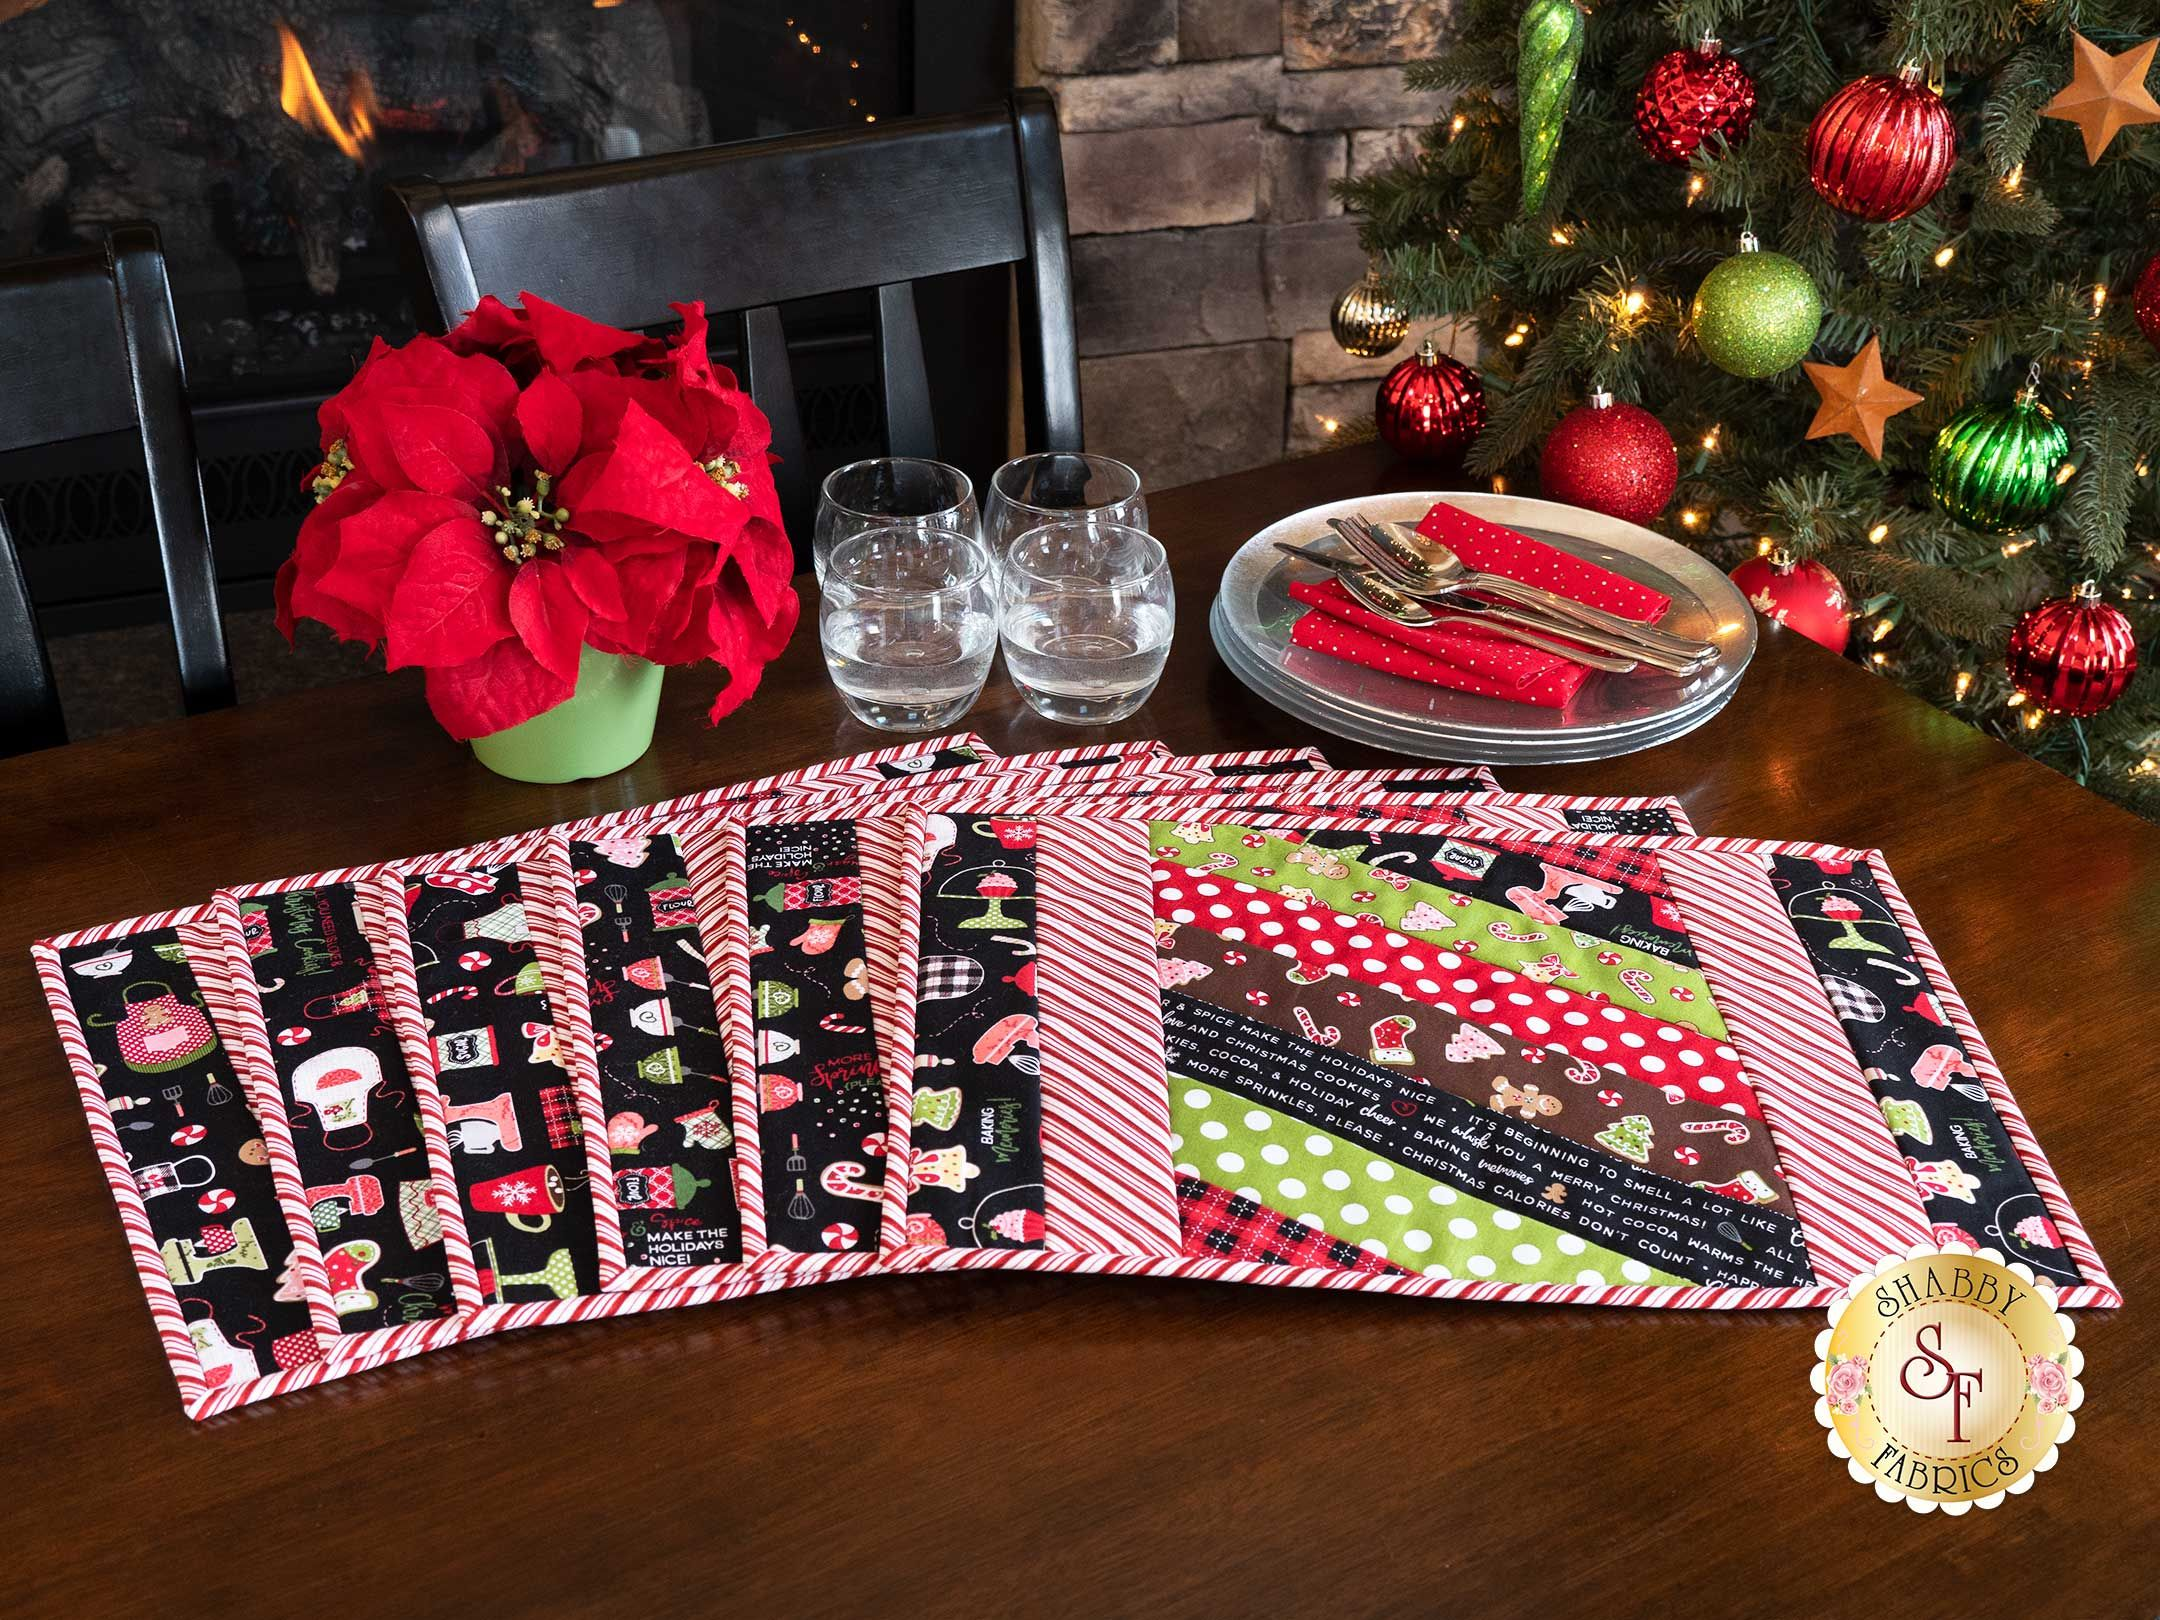 Quilt As You Go Jakarta Placemats Kit We Whisk You A Merry Christmas In 2020 Christmas Placemats Placemats Quilt As You Go